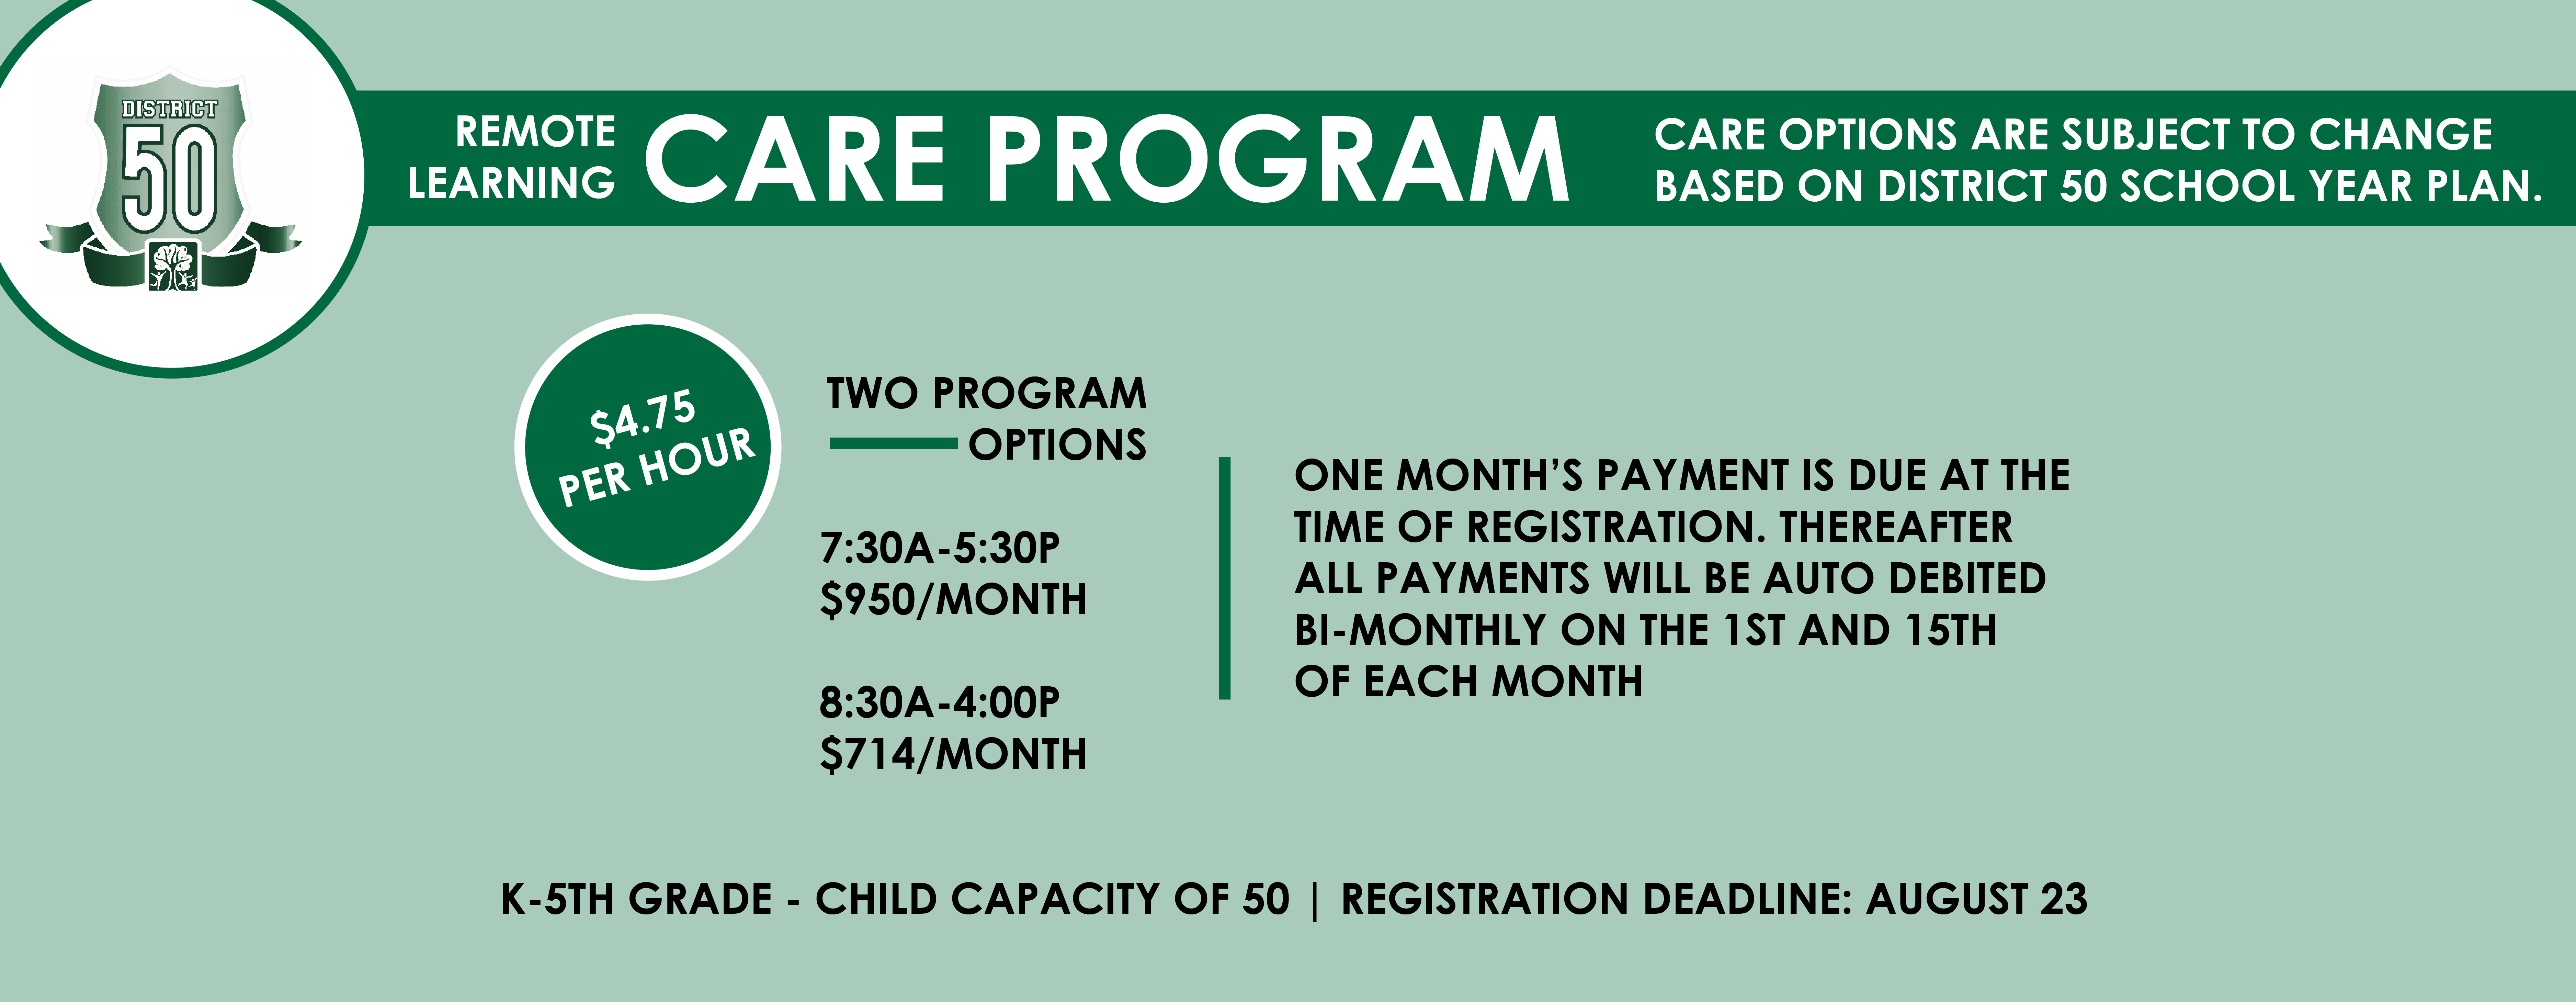 Remote Learning CARE Program for District 50. Two, full day program options are available. Click image to register.